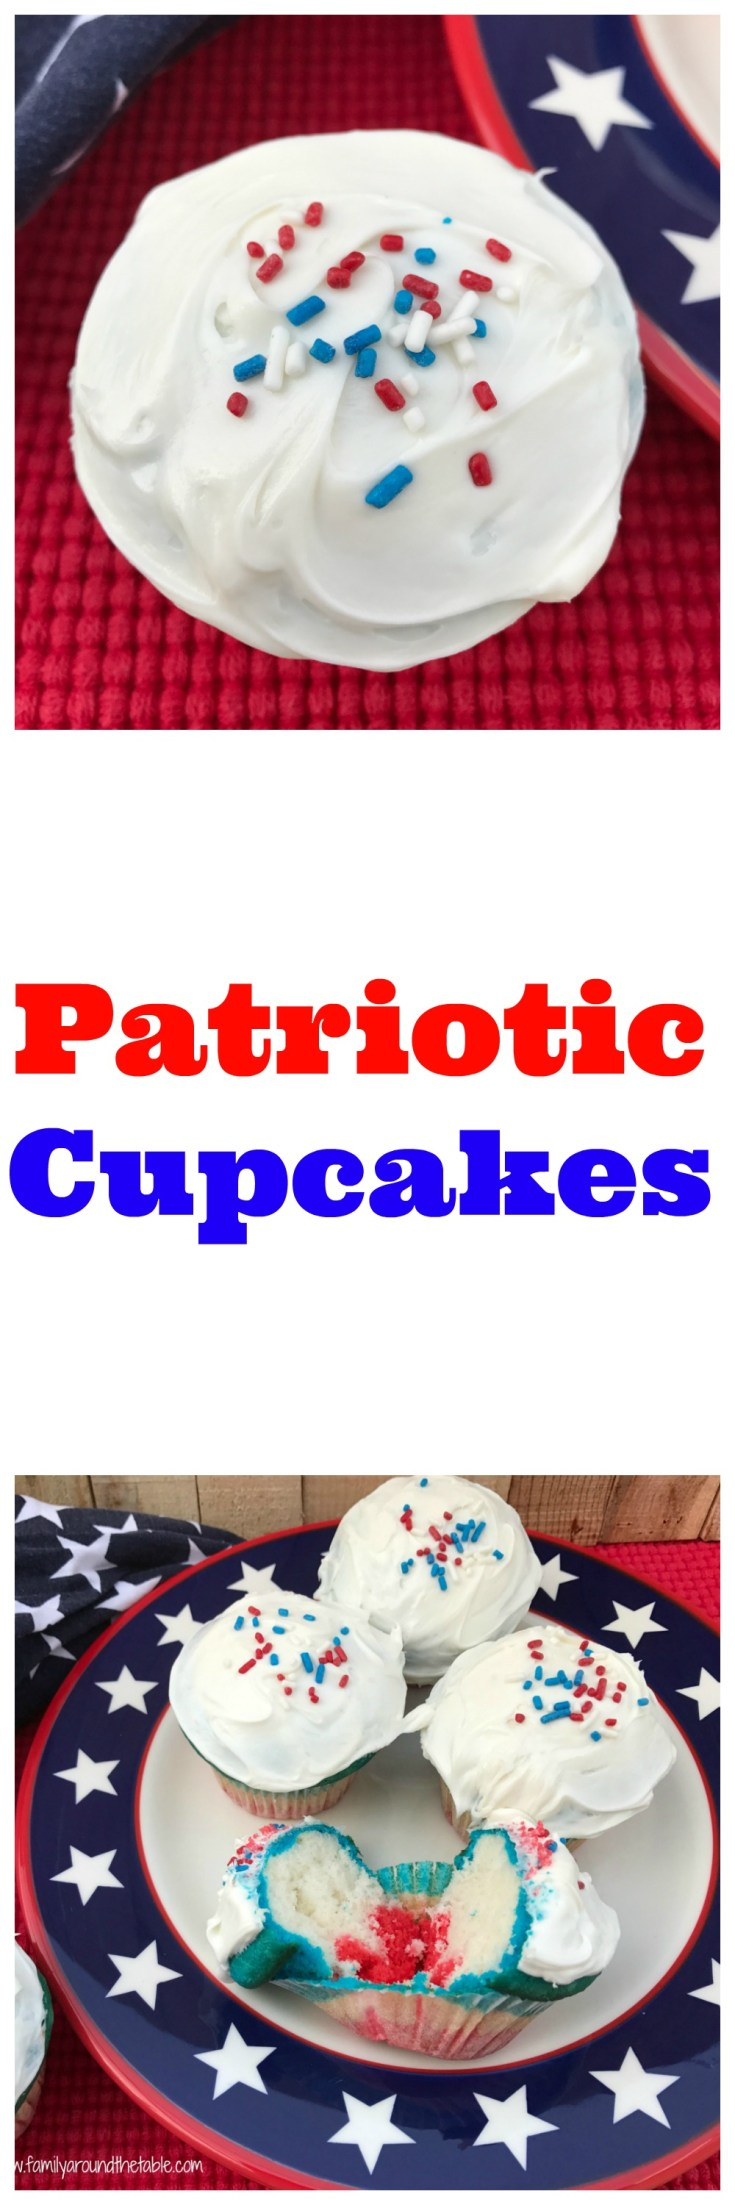 Patriotic cupcakes are perfect for a July 4th celebration.